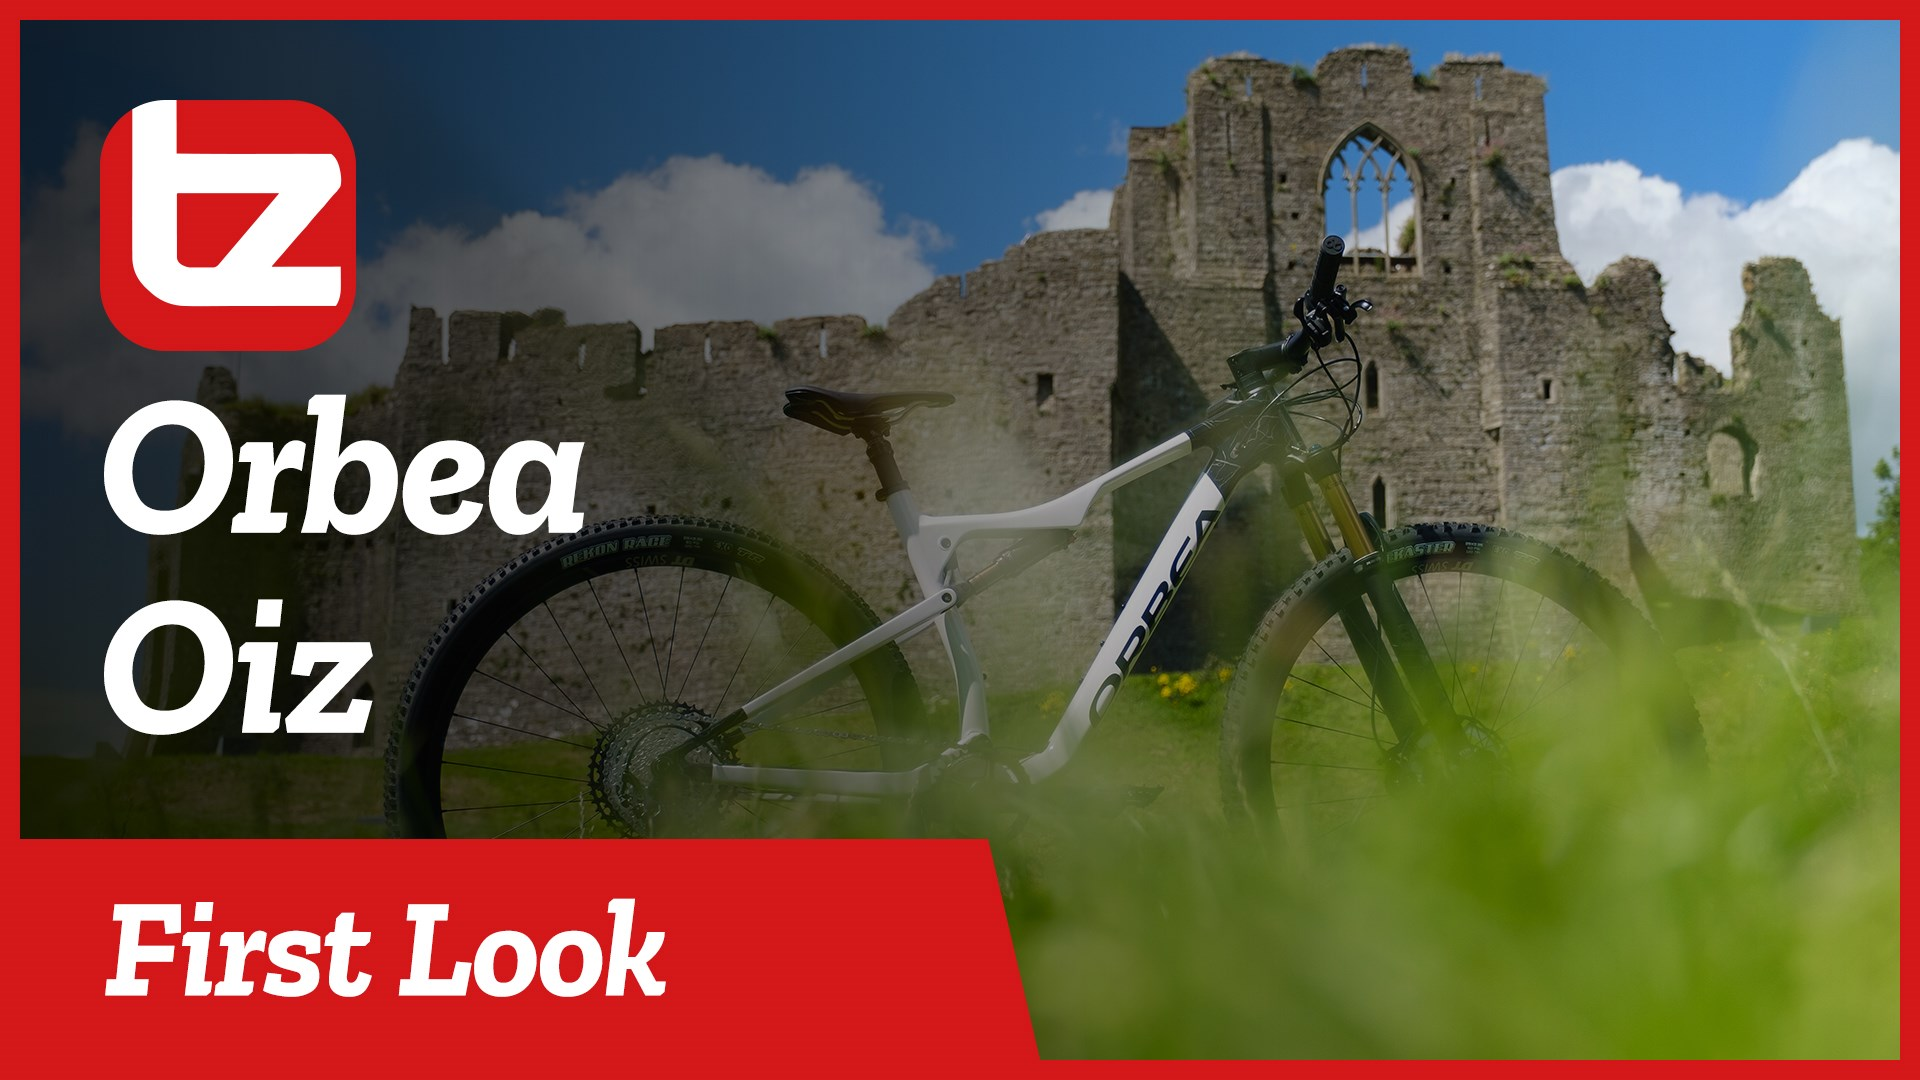 New Orbea Oiz | First Look and Ride Impressions | Tredz Bikes